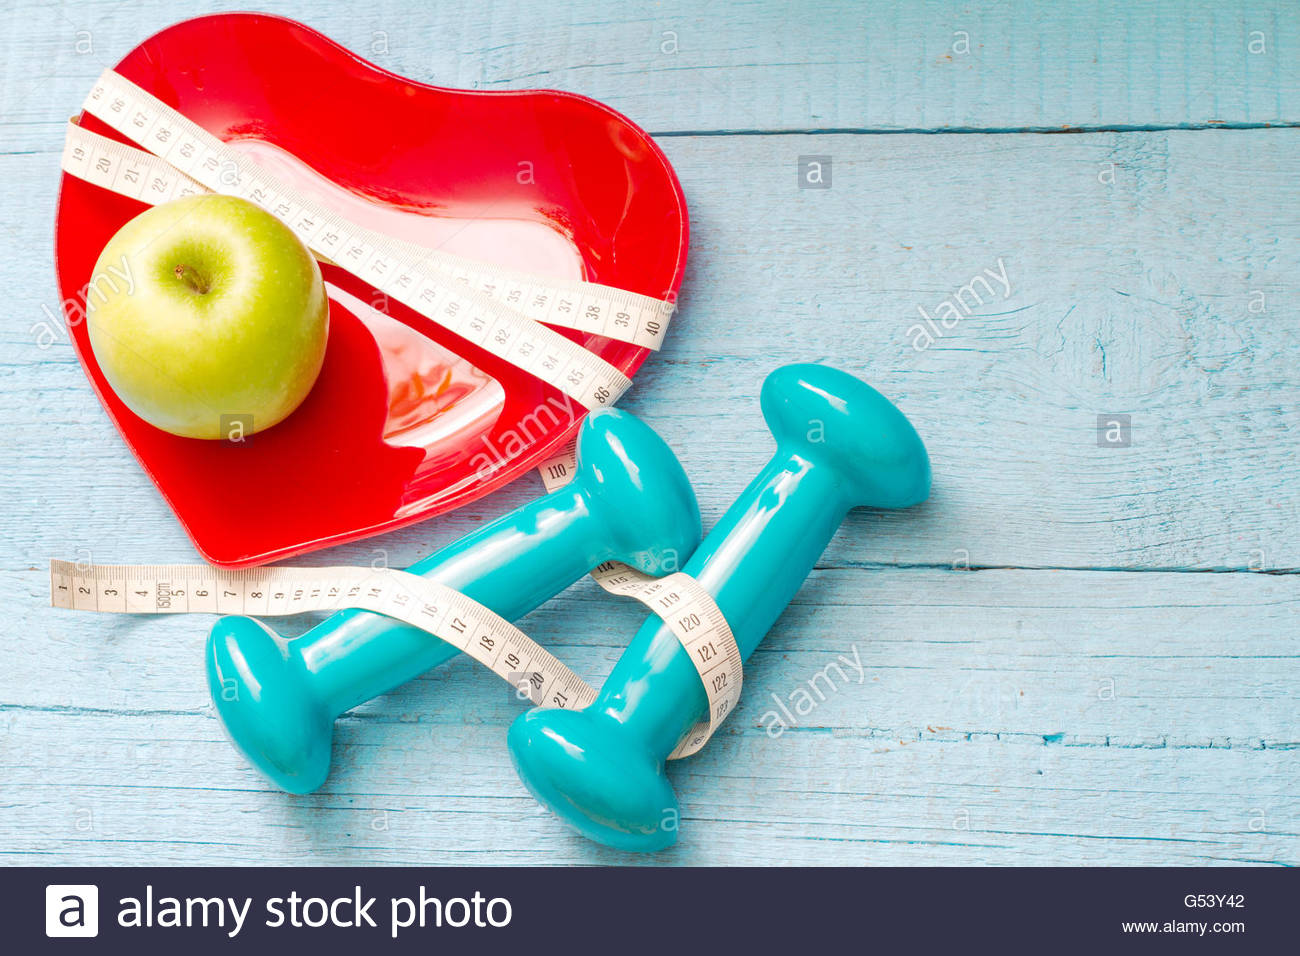 Fit and health abstract concept with red heart plate on wooden 1300x956